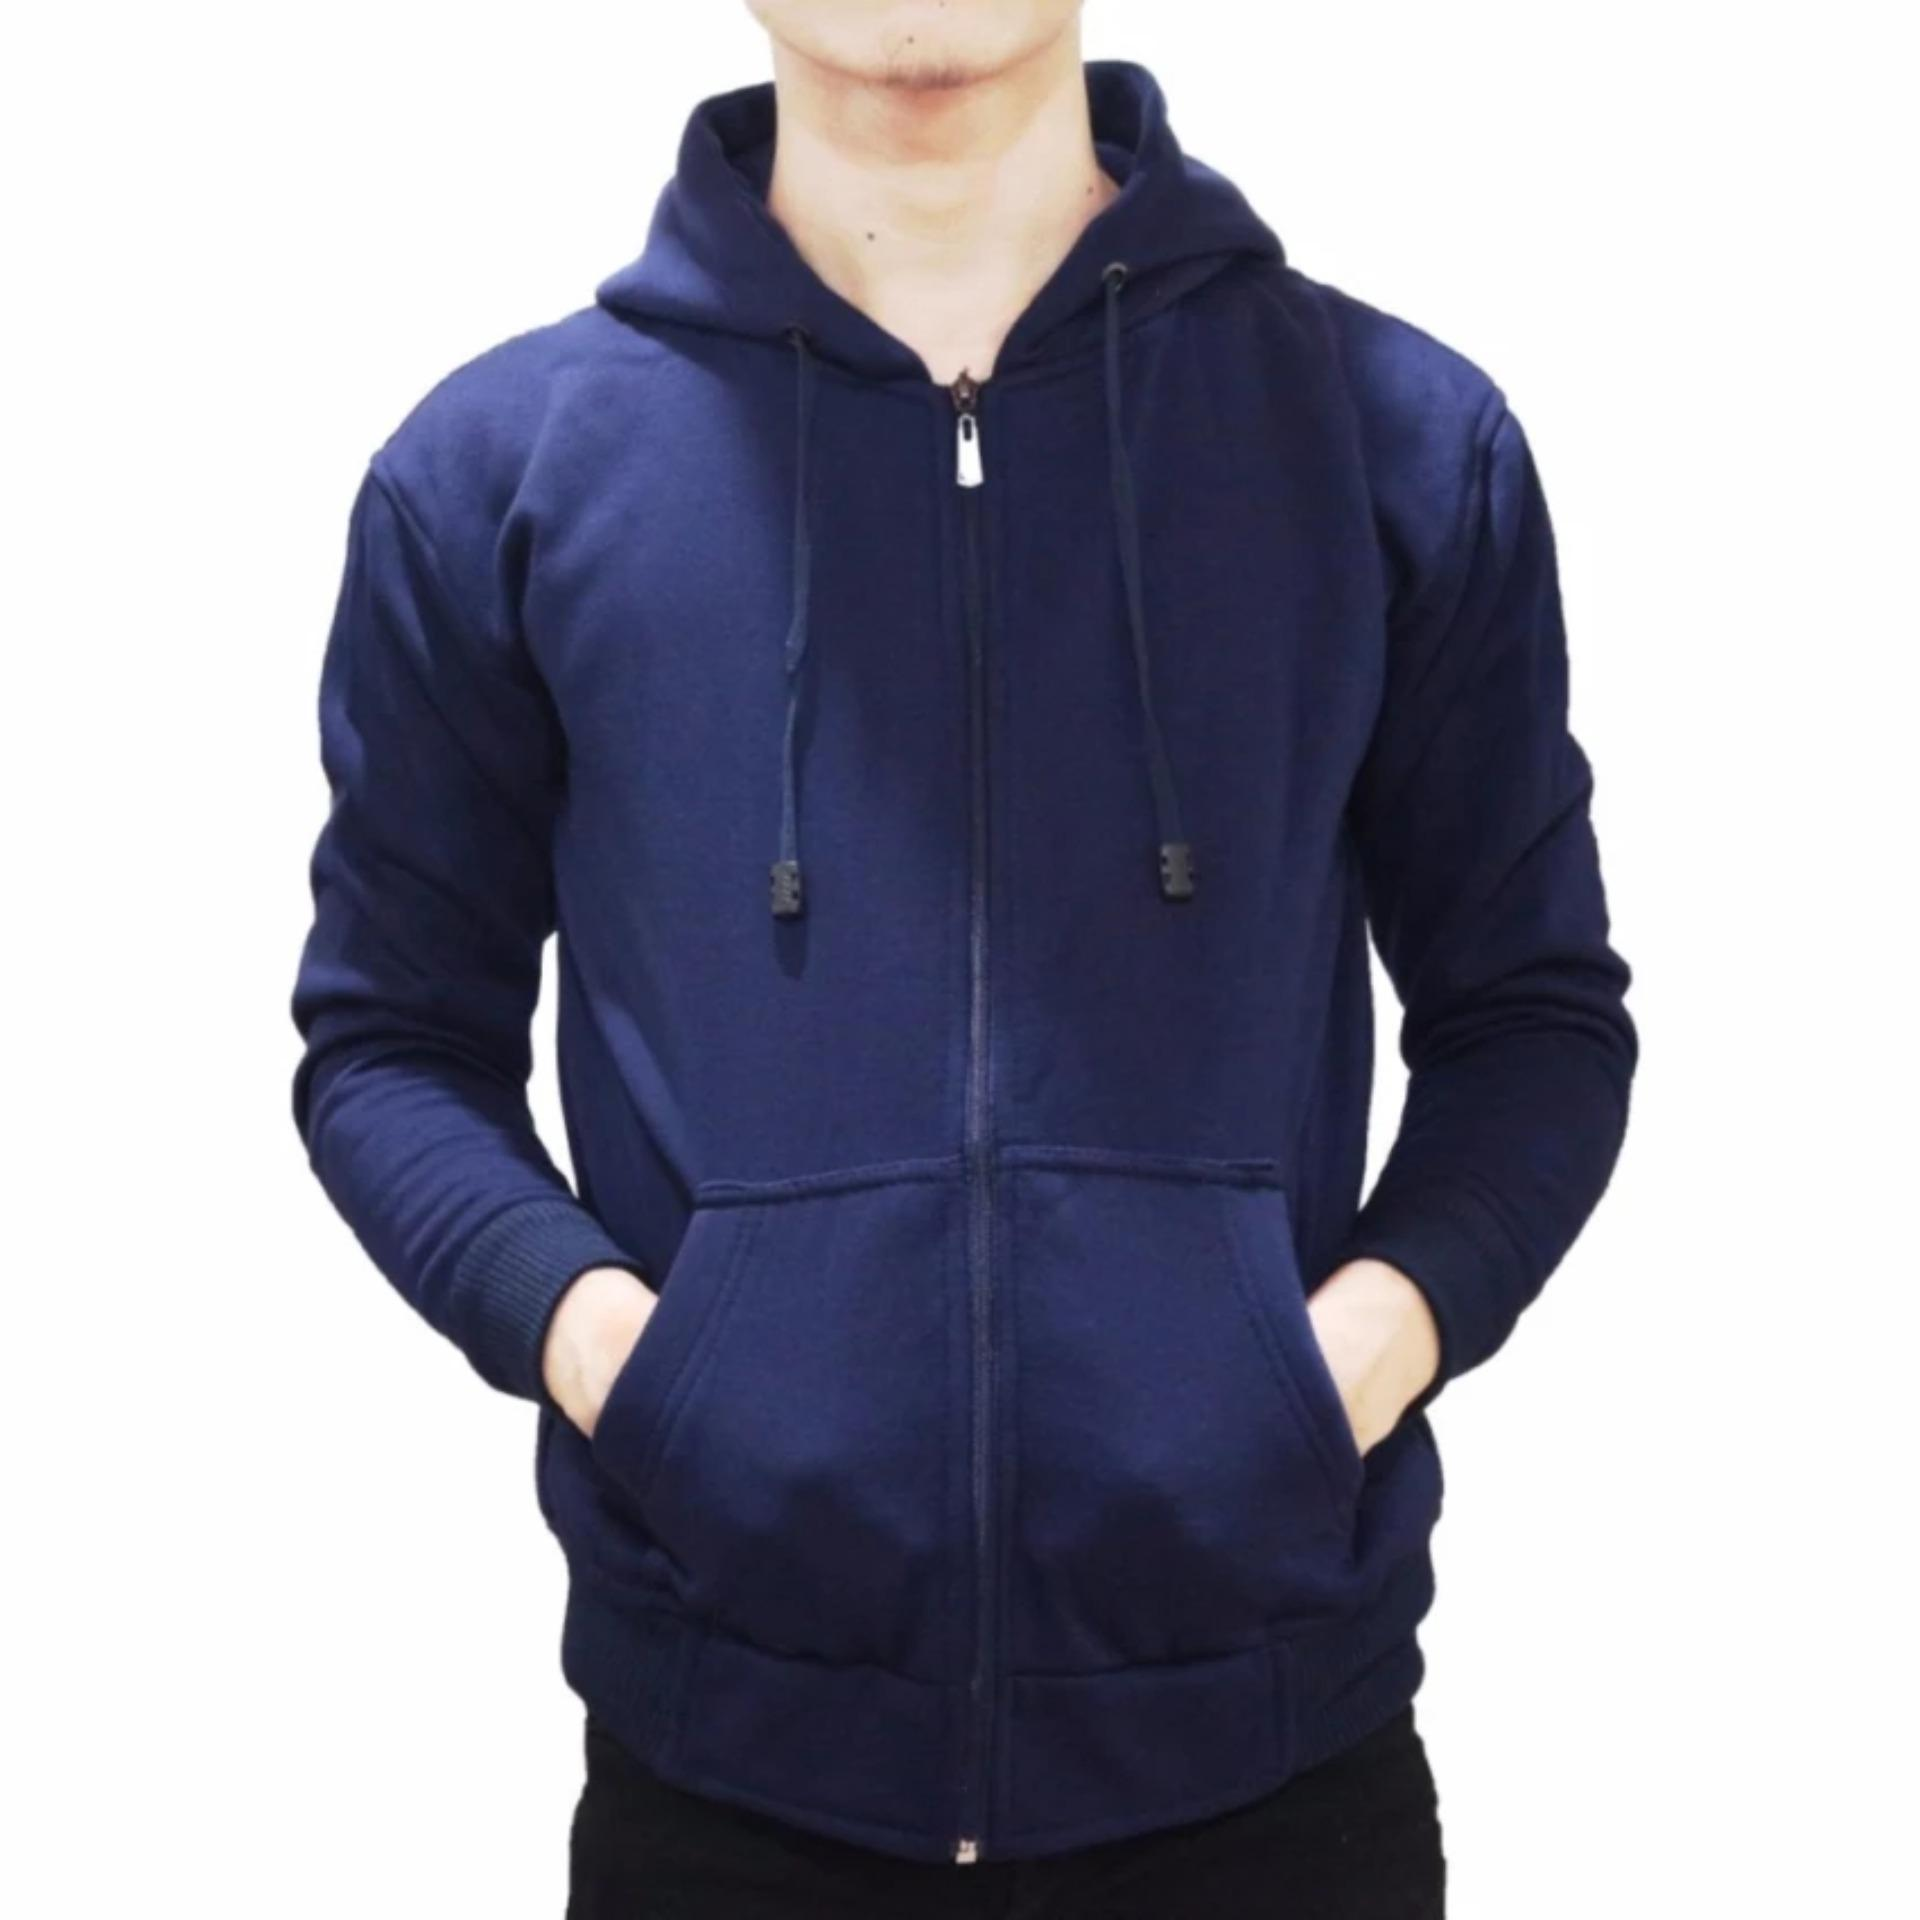 VERICHI - Jaket Sweater Hoodie Pria Zipper Polos Bahan Fleece 5242e8d789